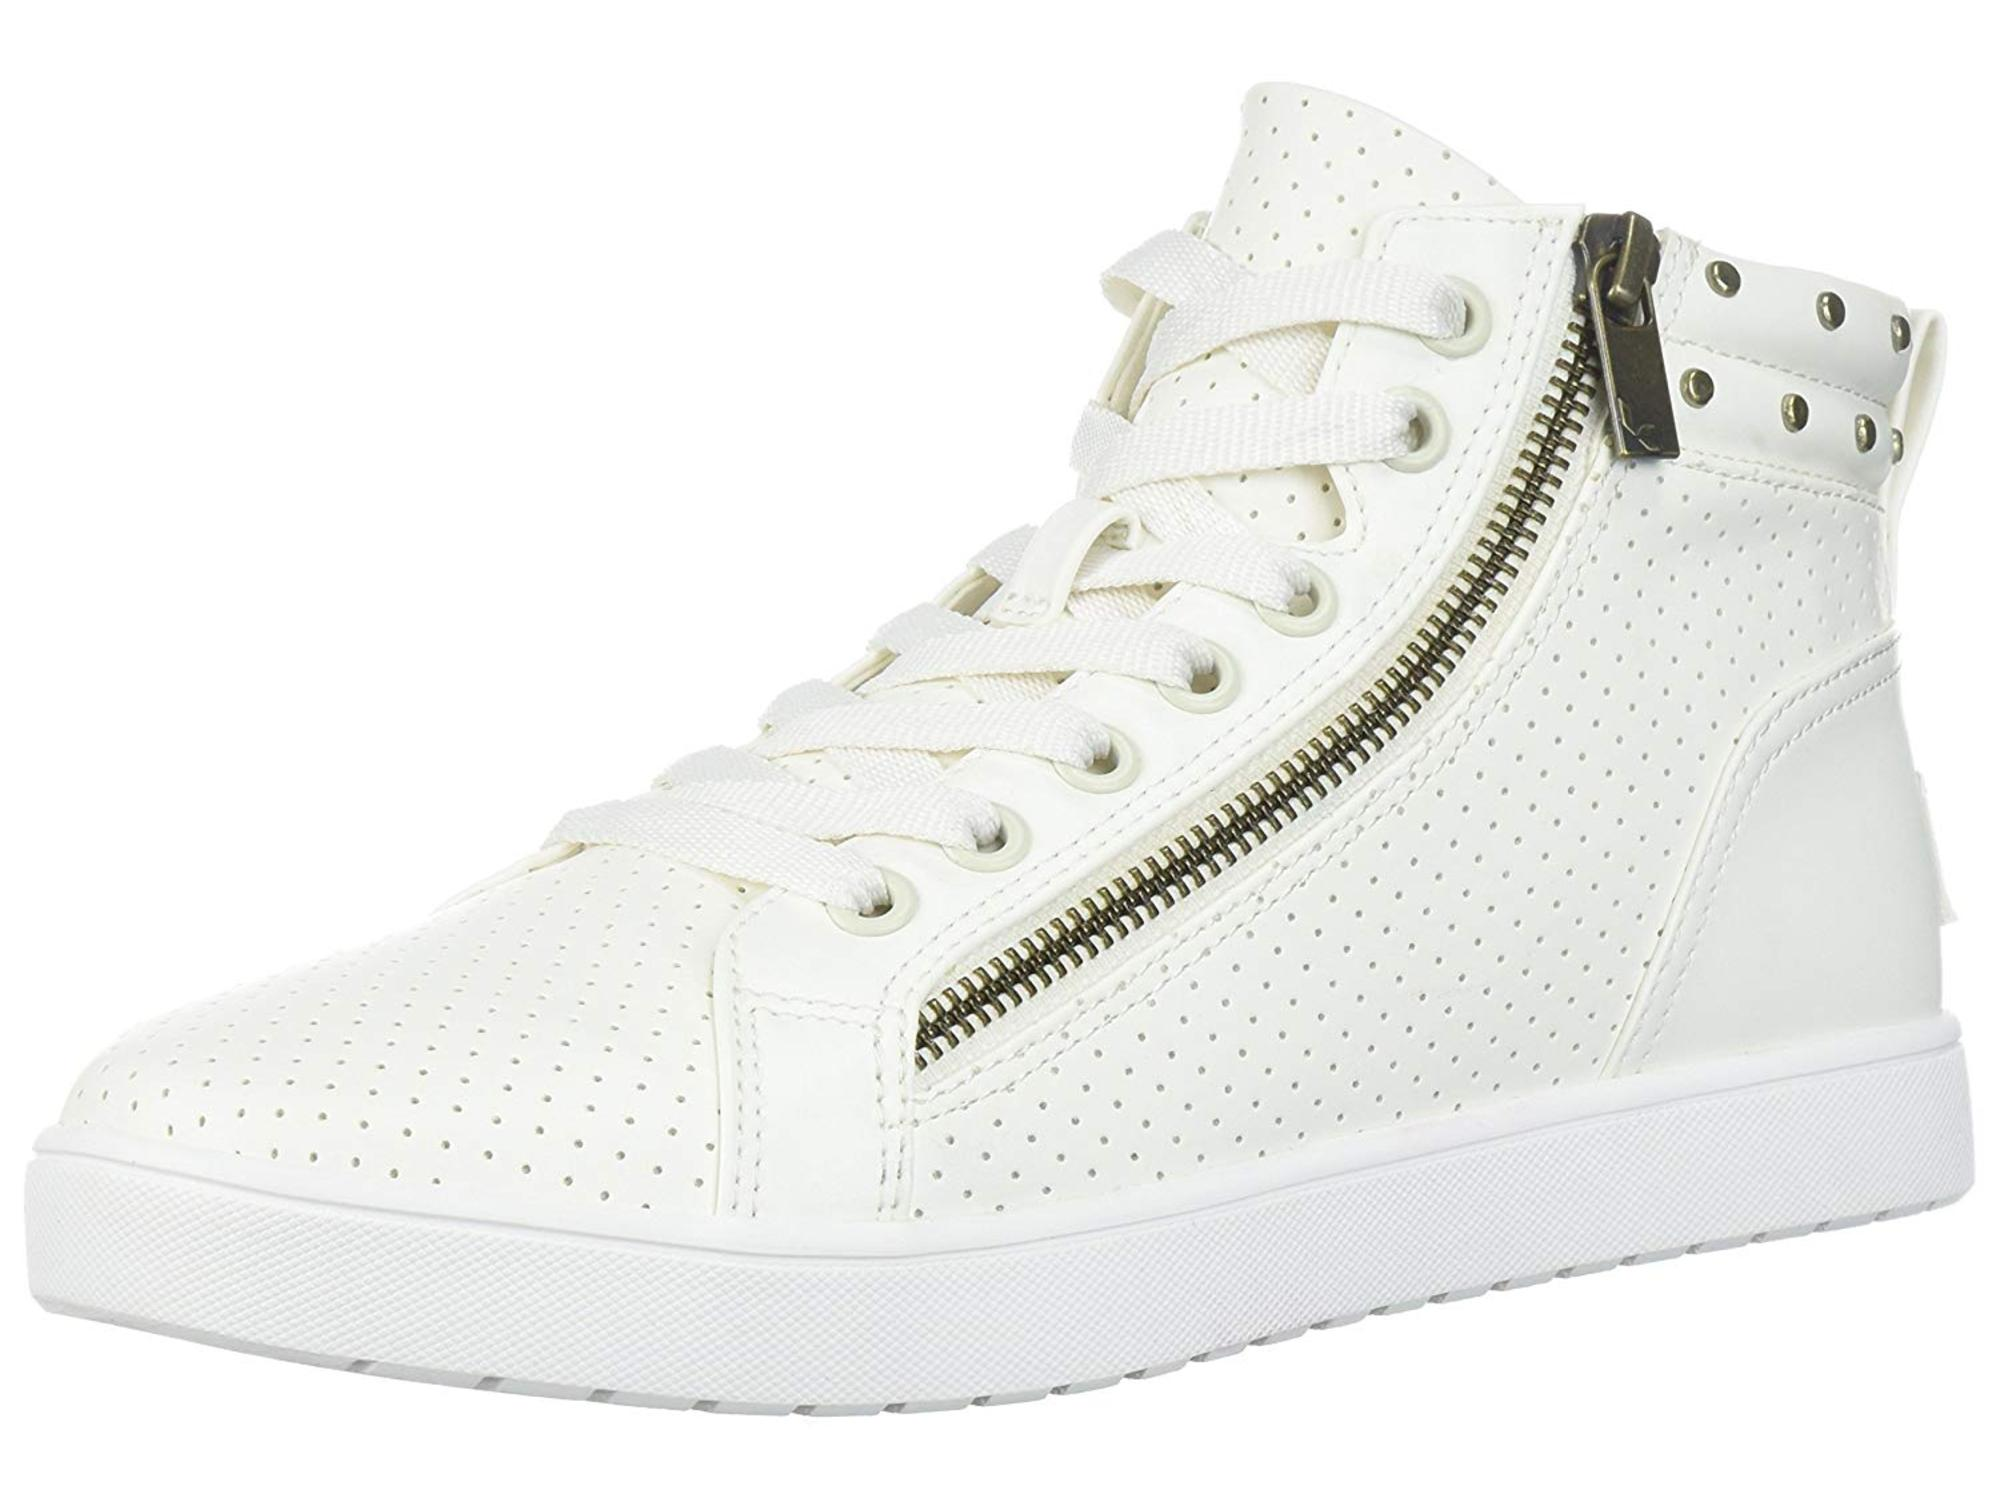 Koolaburra by UGG Women's W Kayleigh High Top Sneaker, White, Size 10.0 by Koolaburra by UGG